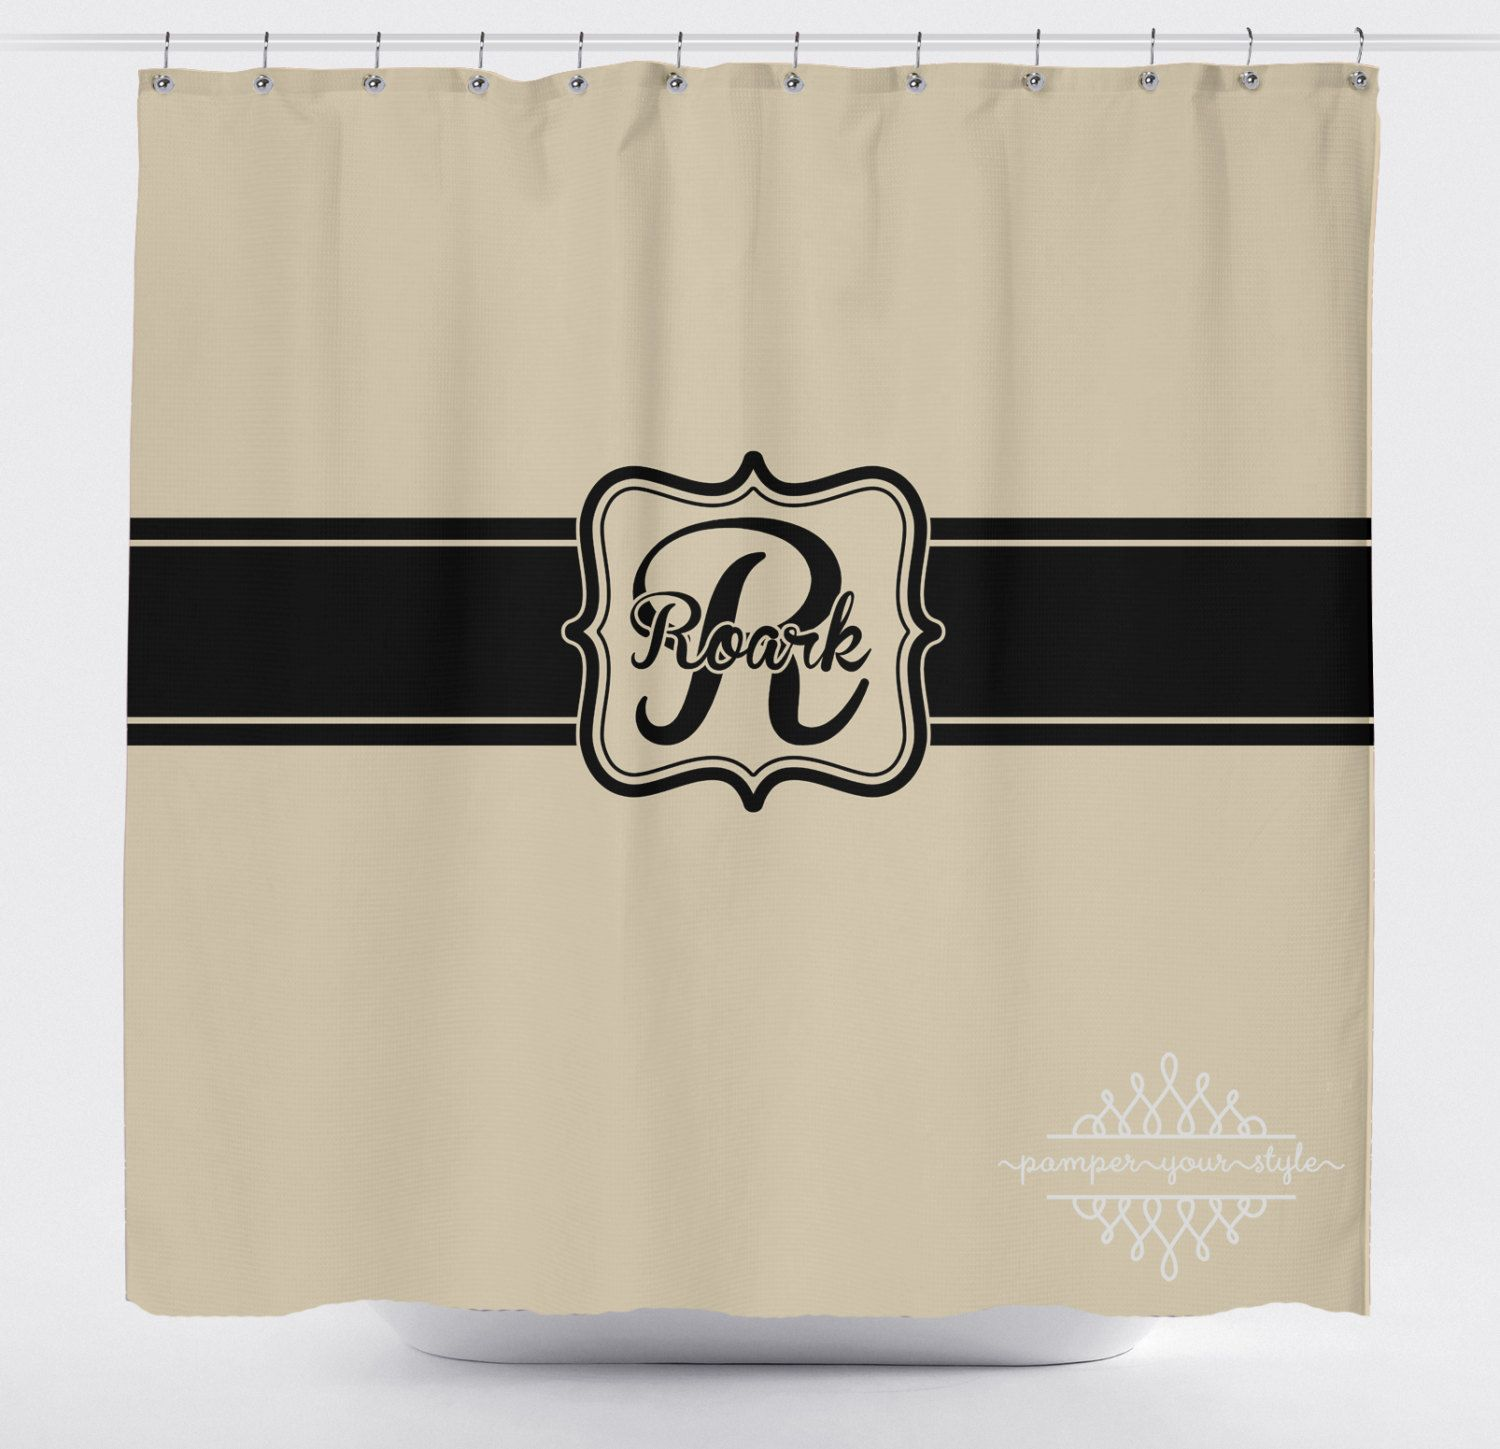 Tan and black monogrammed shower curtain classy bathroom shower